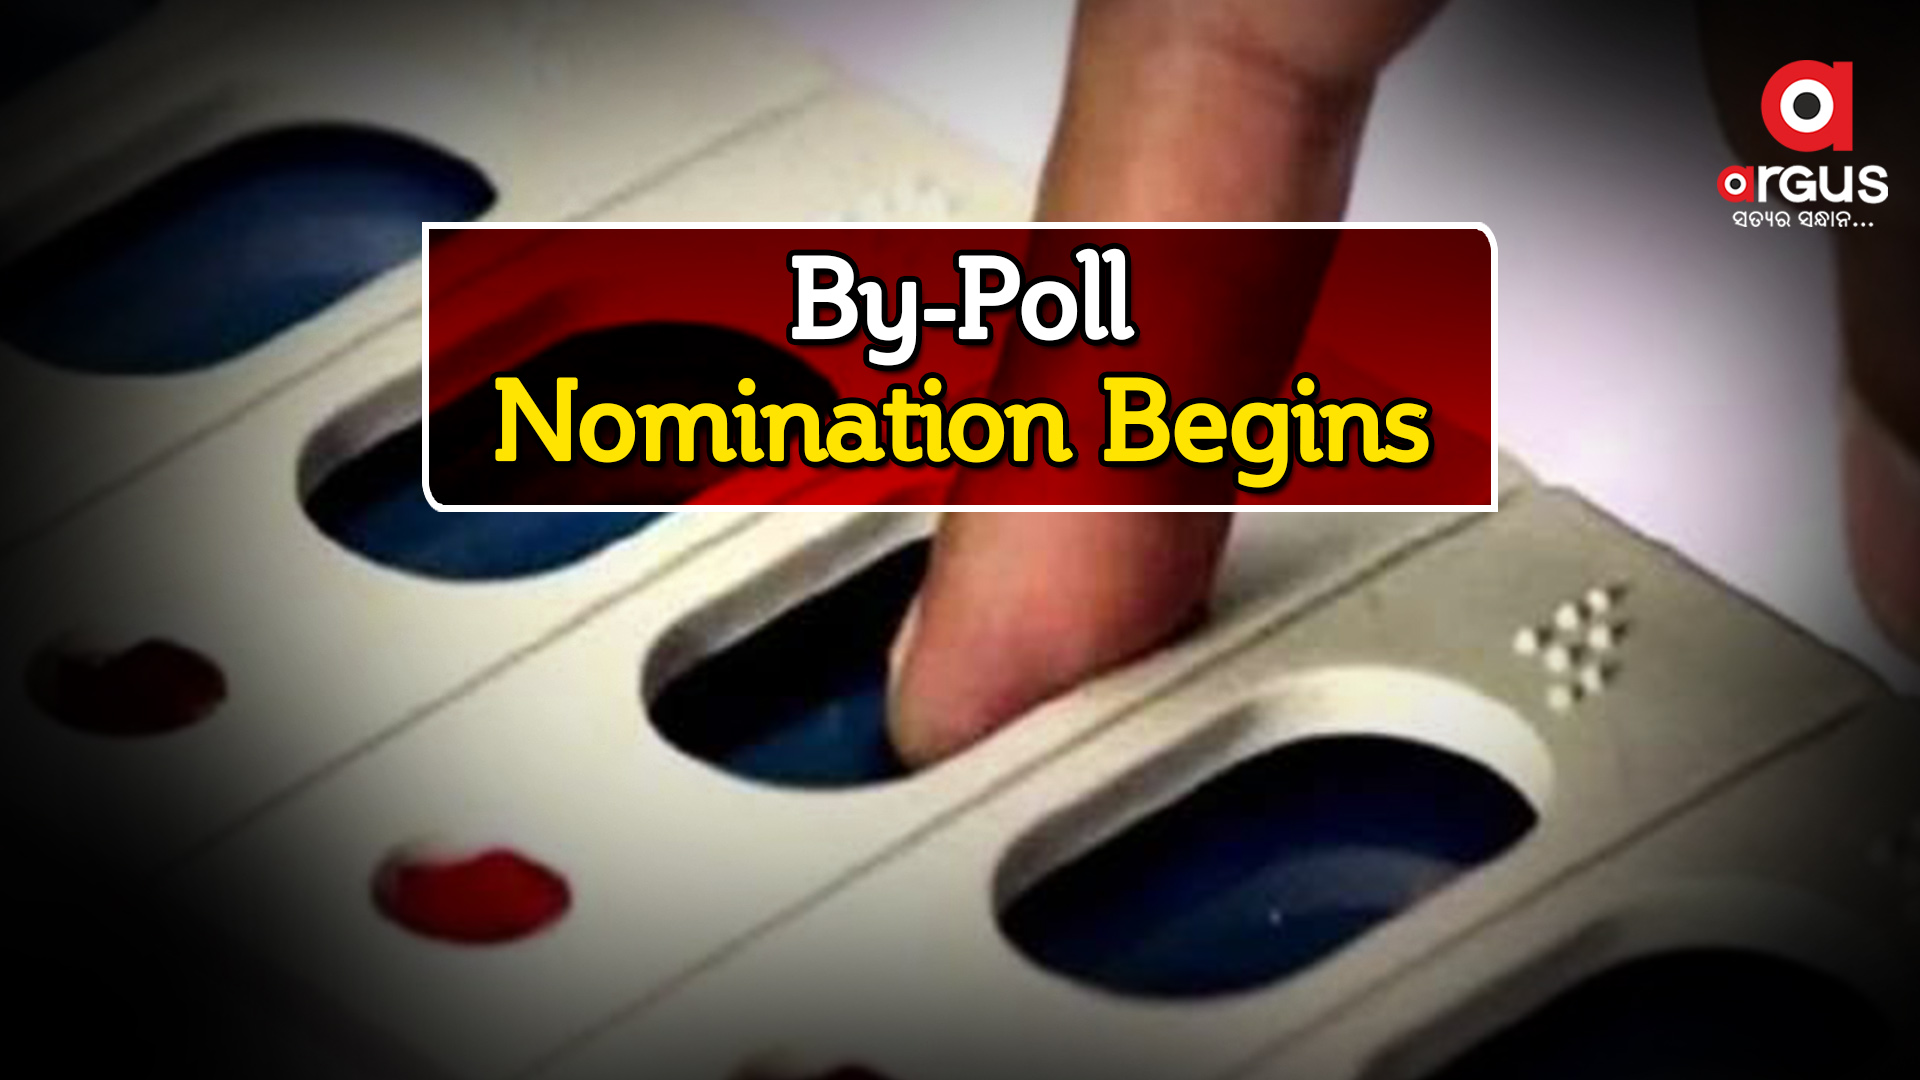 Odisha By-Polls: Nomination starts today after EC notification